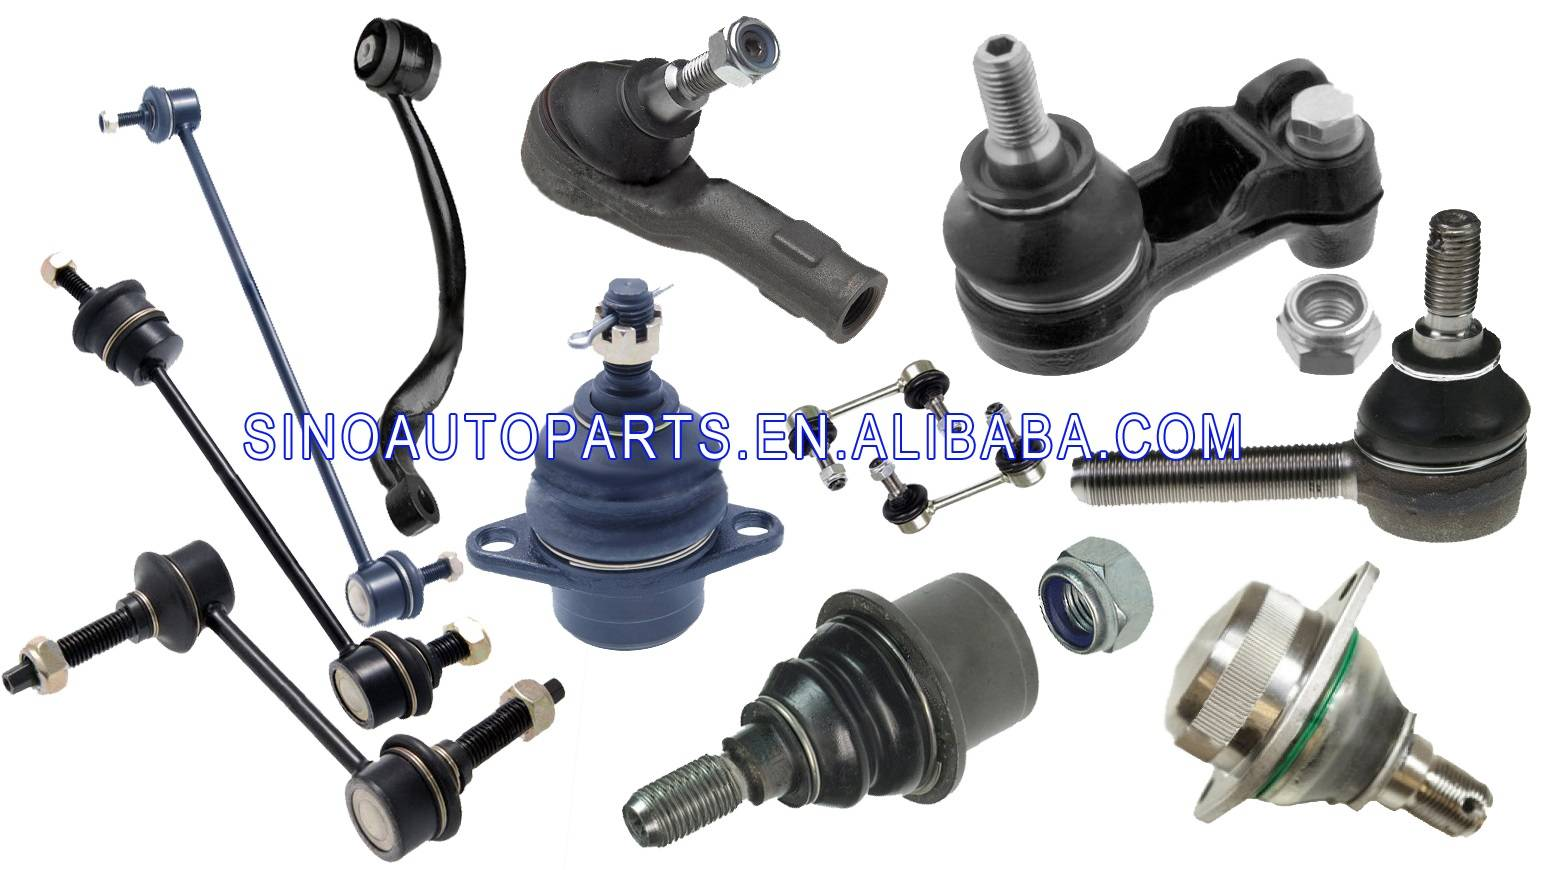 TIE ROD END BALL JOINT QJB 500070 QJB 500040 QFK 500030 QFW 500020 RBK 500300 RBX 500432 FOR LAND RO